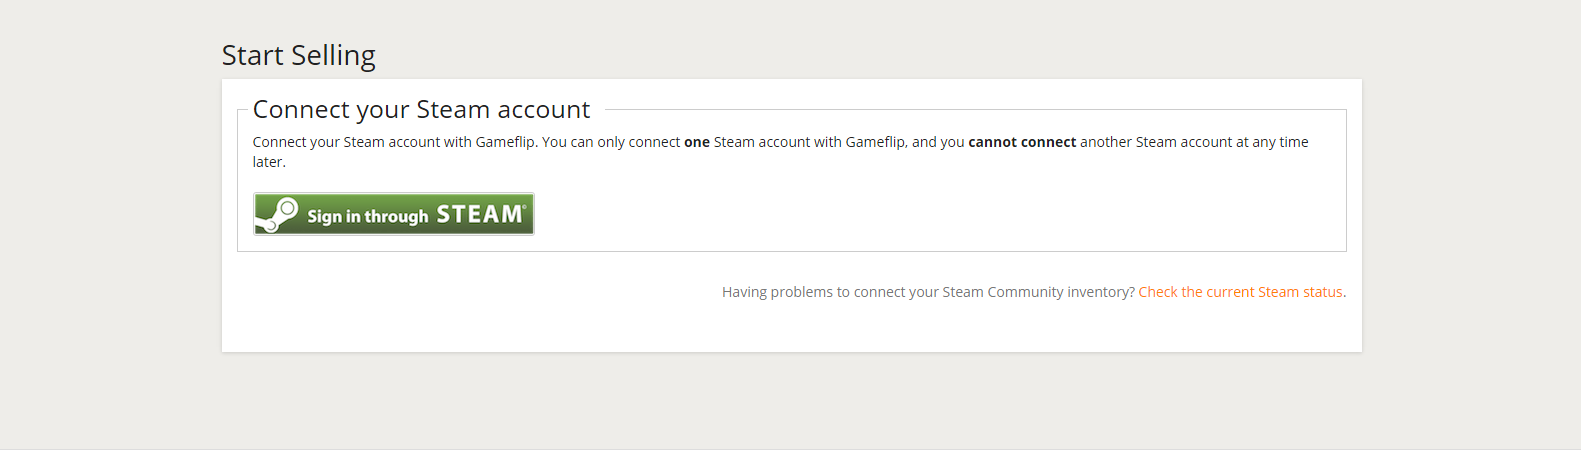 connect_steam.png